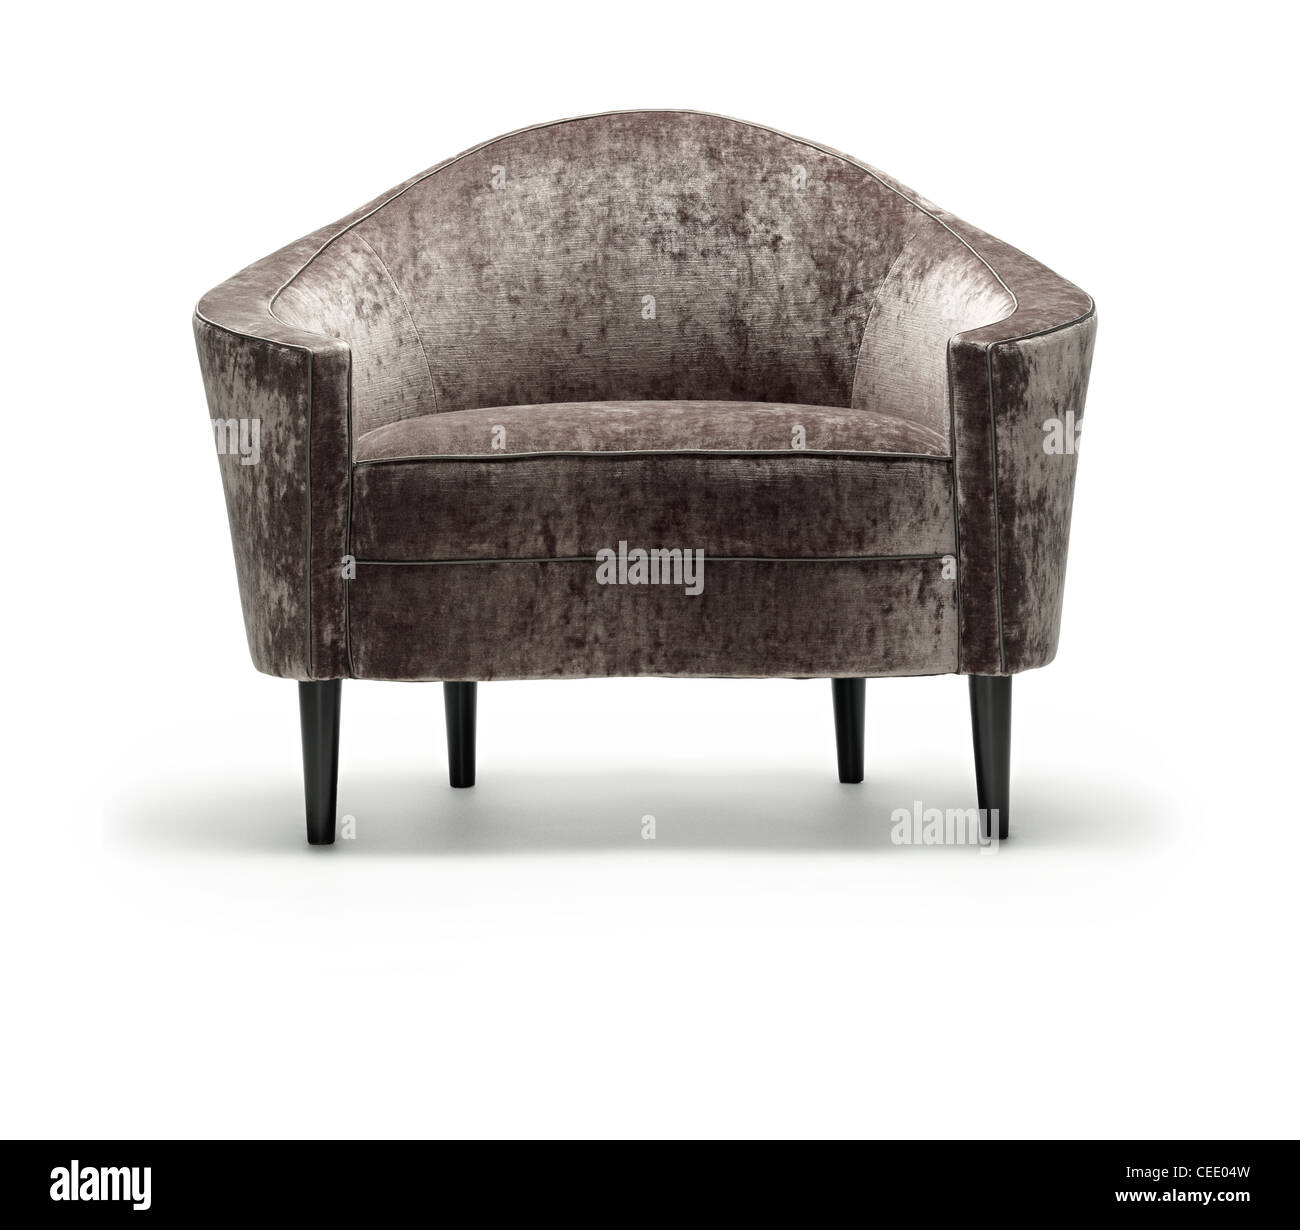 Lounge chair - Stock Image